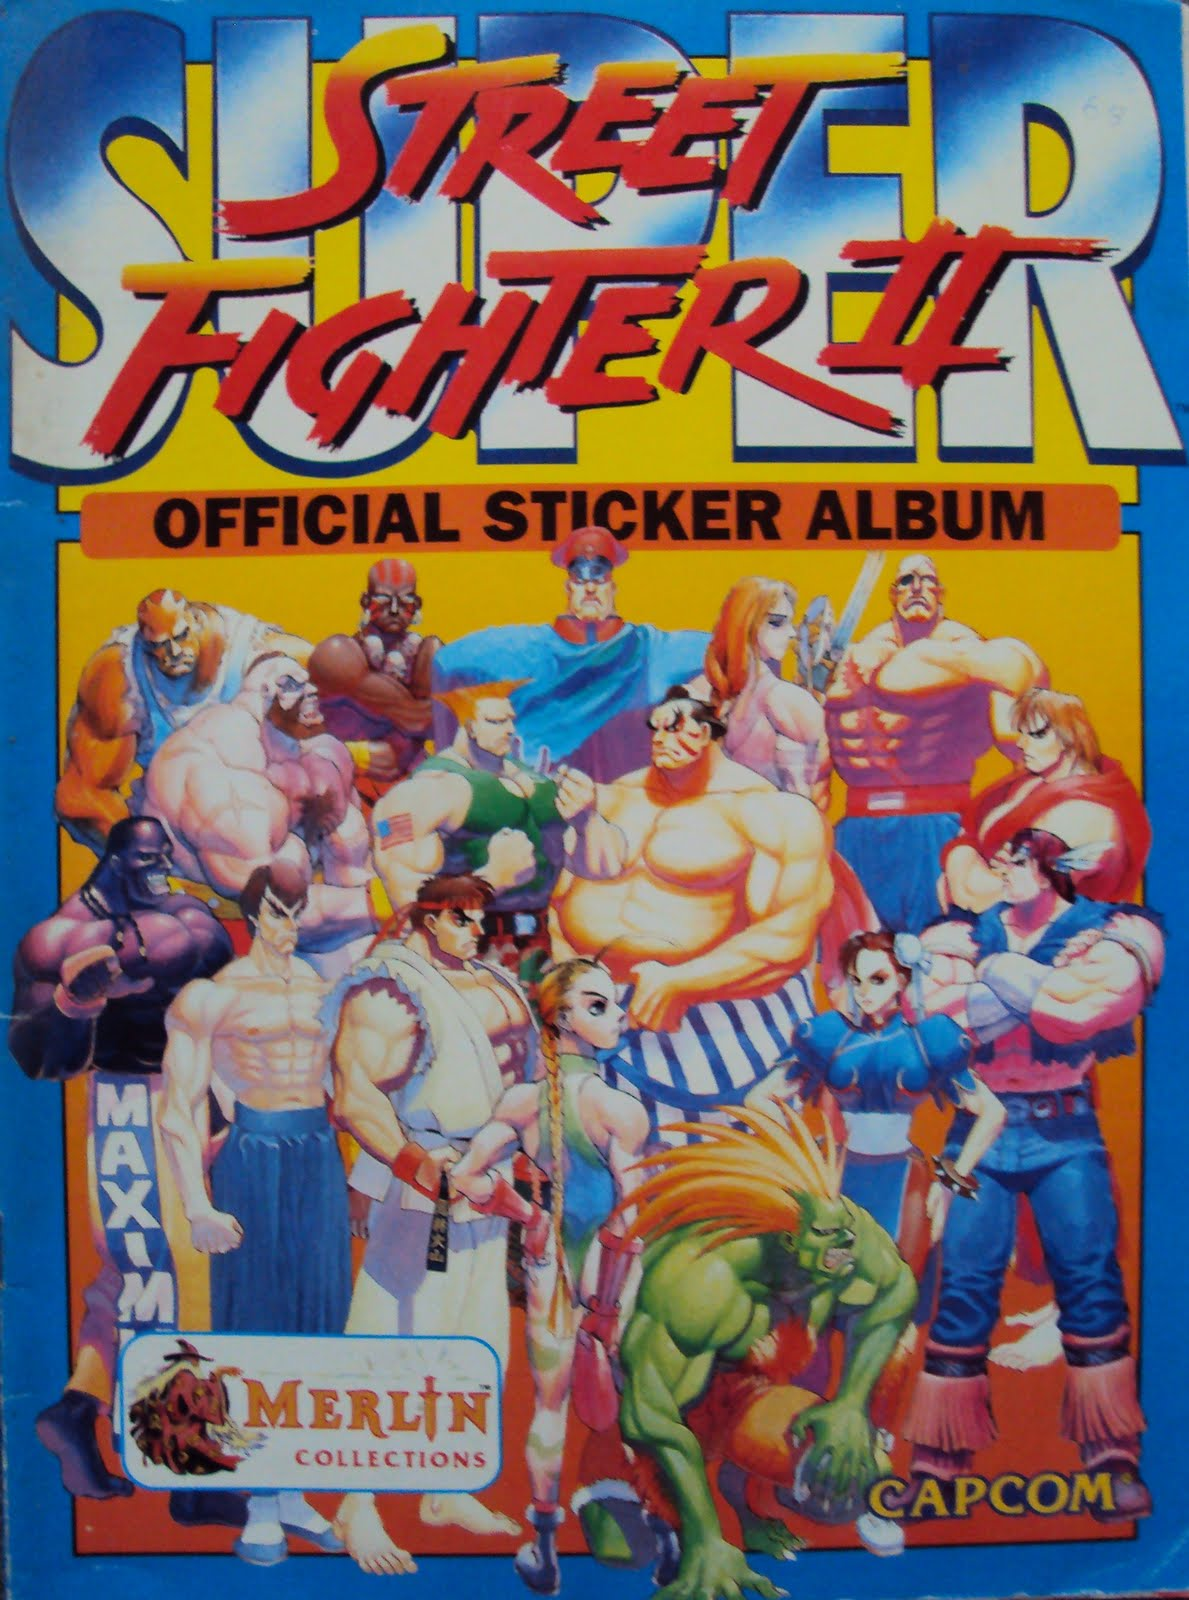 Not long afterwards capcom released super street fighter 2 and merlin were hot on their heels